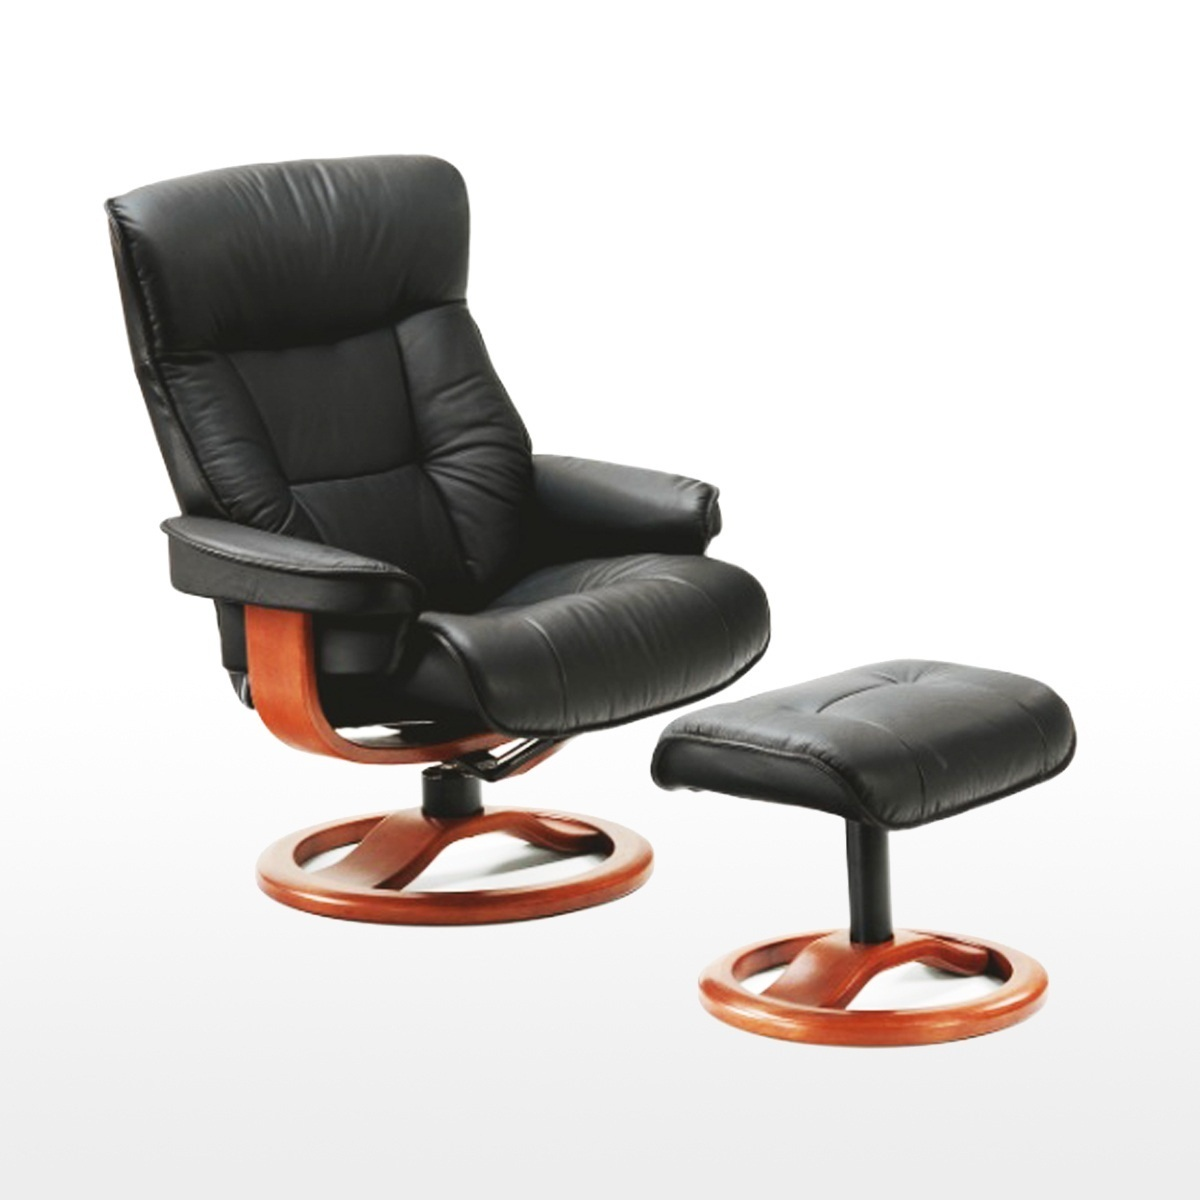 Z Chair For Sale Leather Recliner Chair Sale